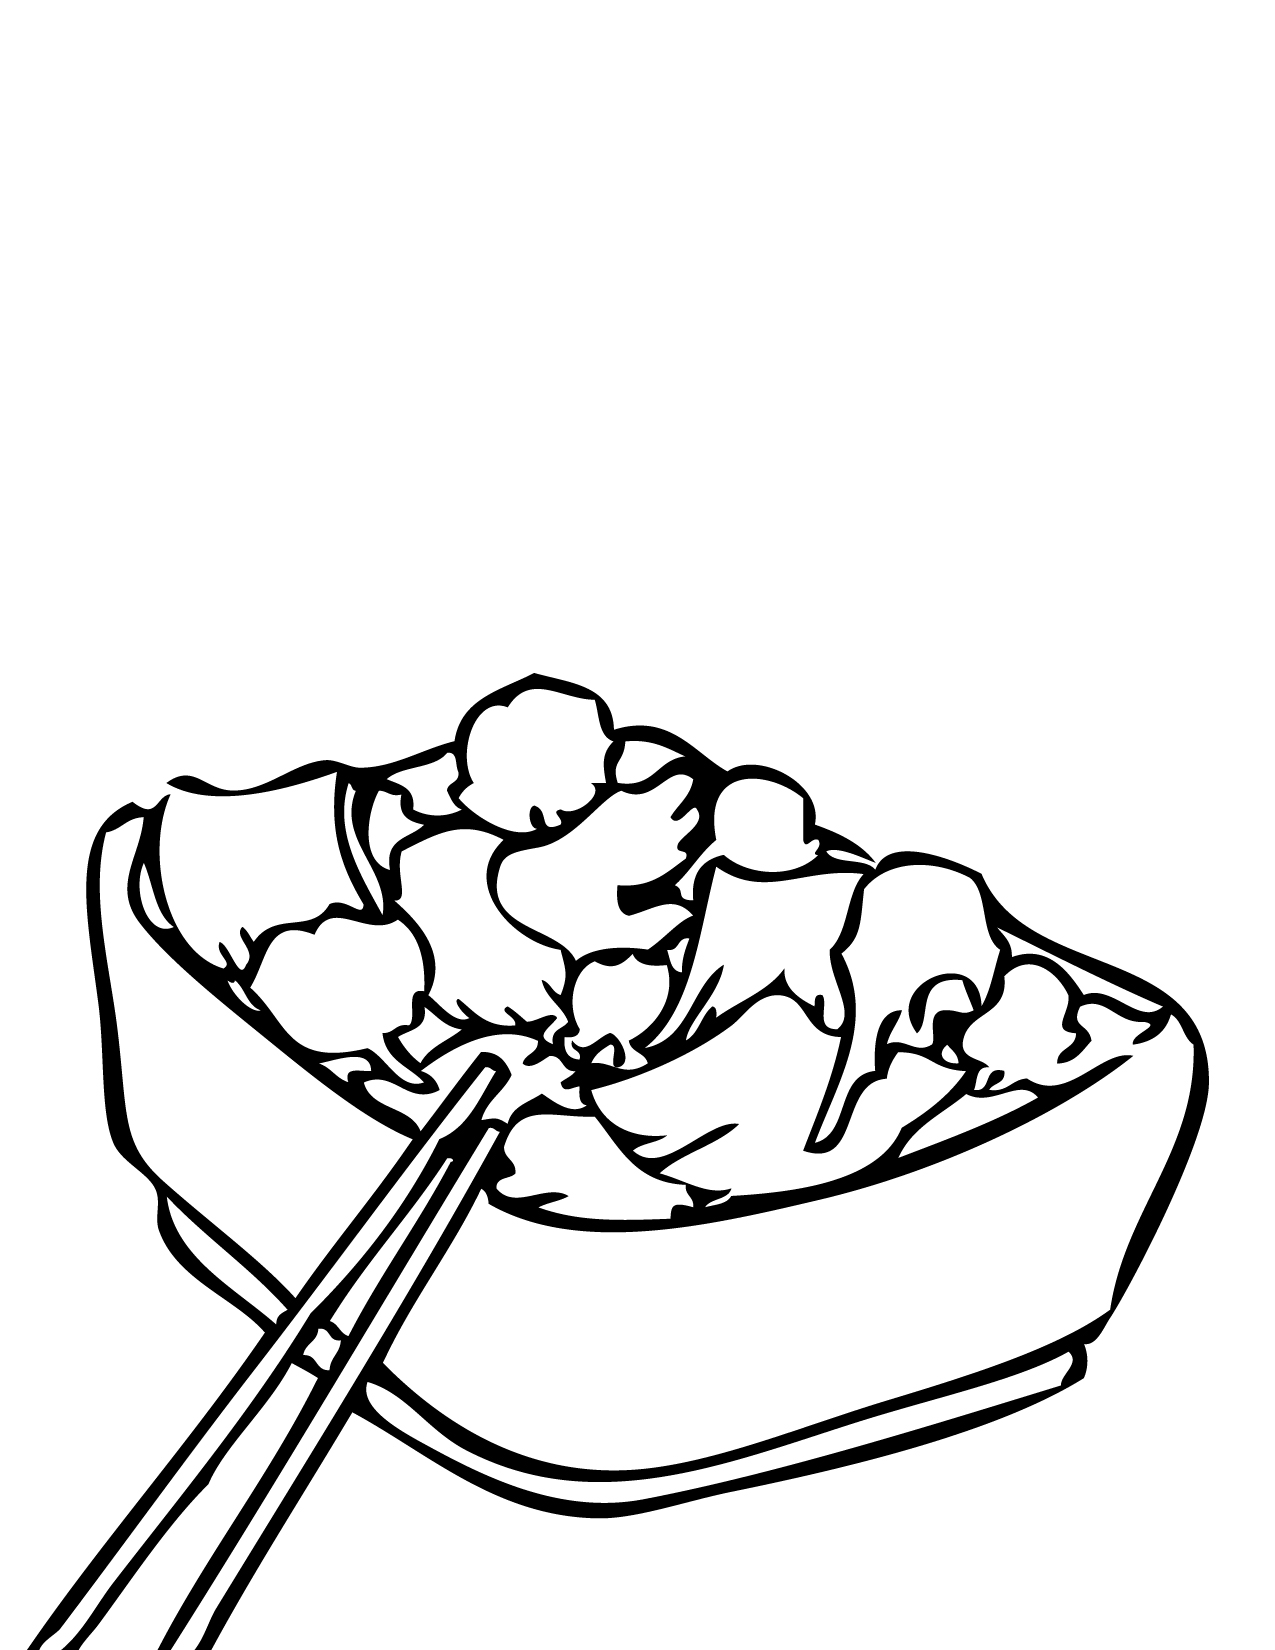 Healthy Food Clipart Black And White | Free download on ...